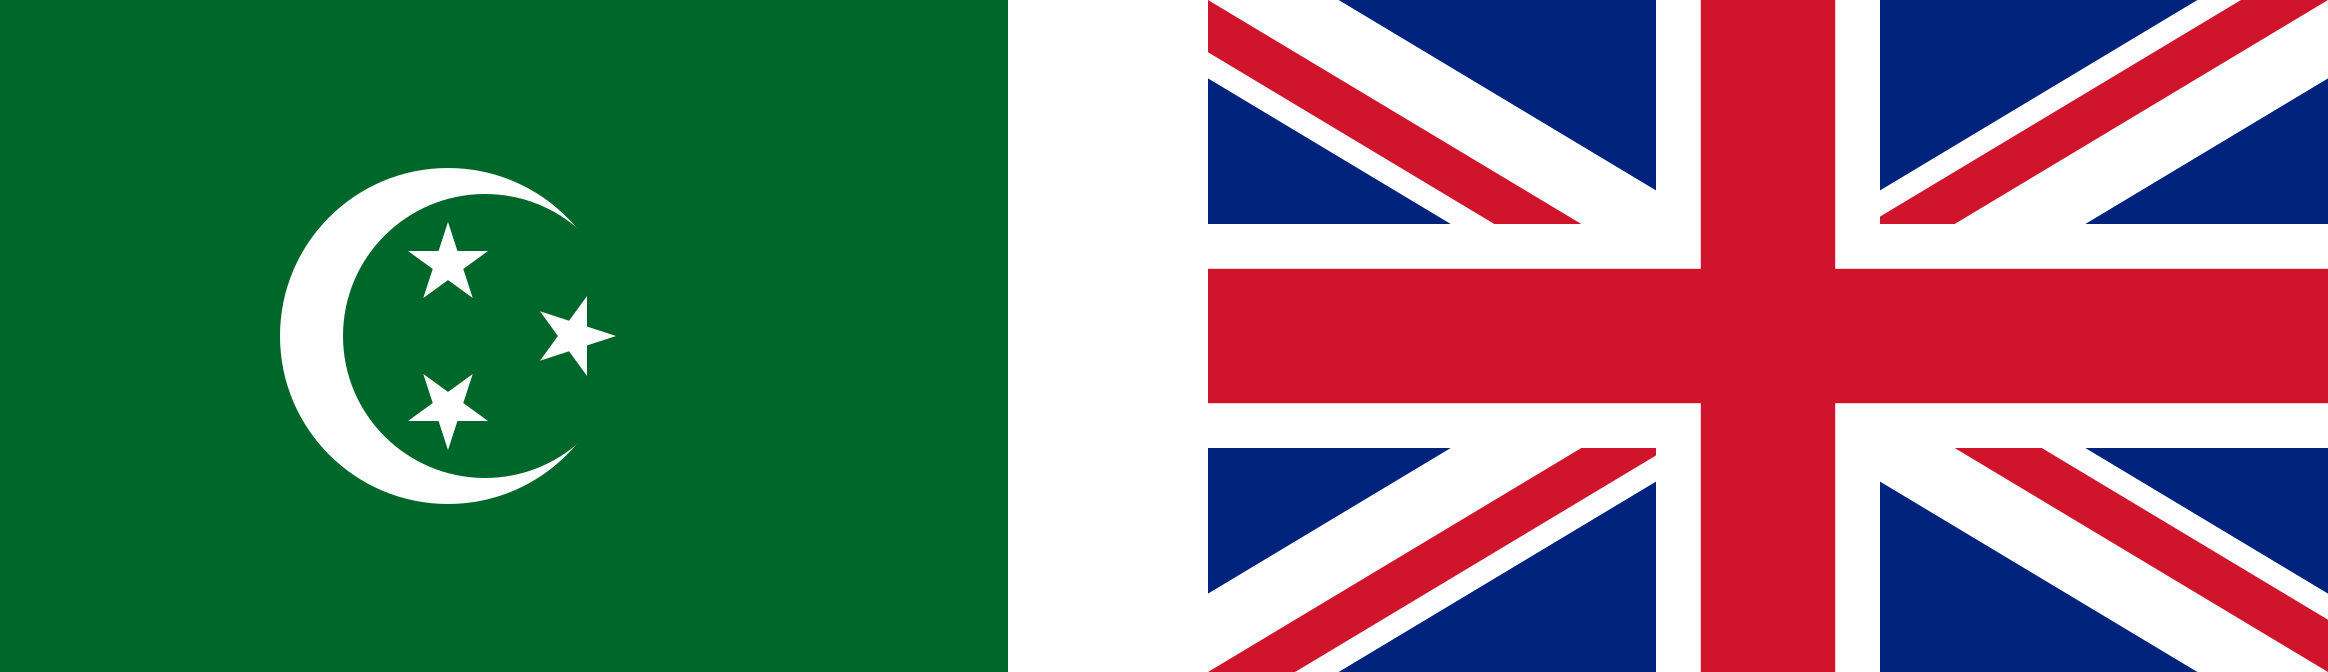 The two flags of the Anglo-Egyptian Sudan